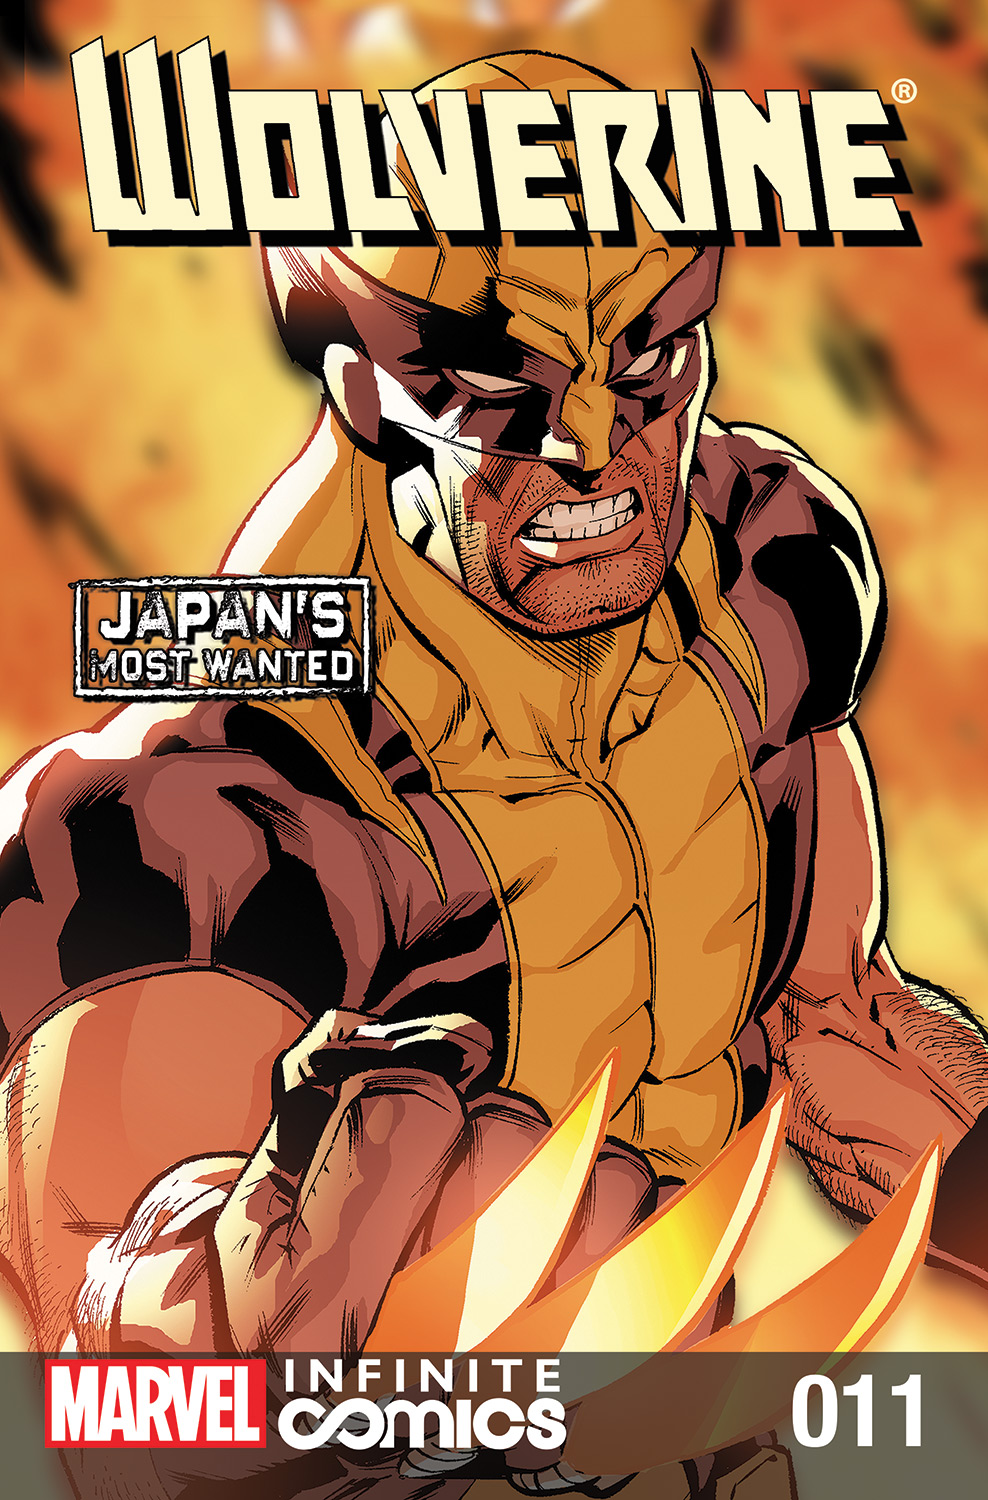 Wolverine: Japan's Most Wanted: Infinite Comic Vol 1 11